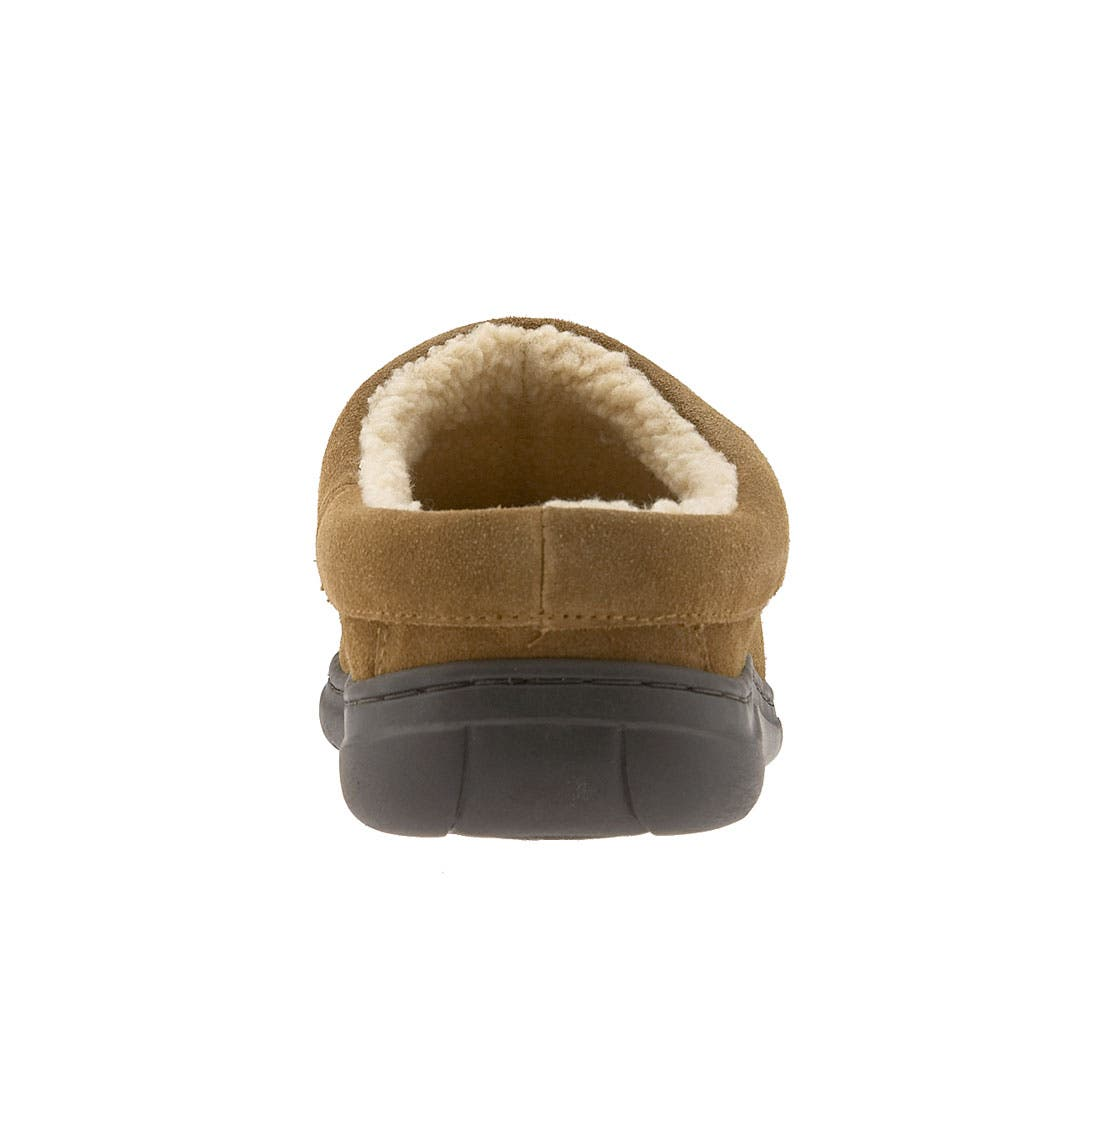 'Edmonton' Slipper,                             Alternate thumbnail 4, color,                             TAN